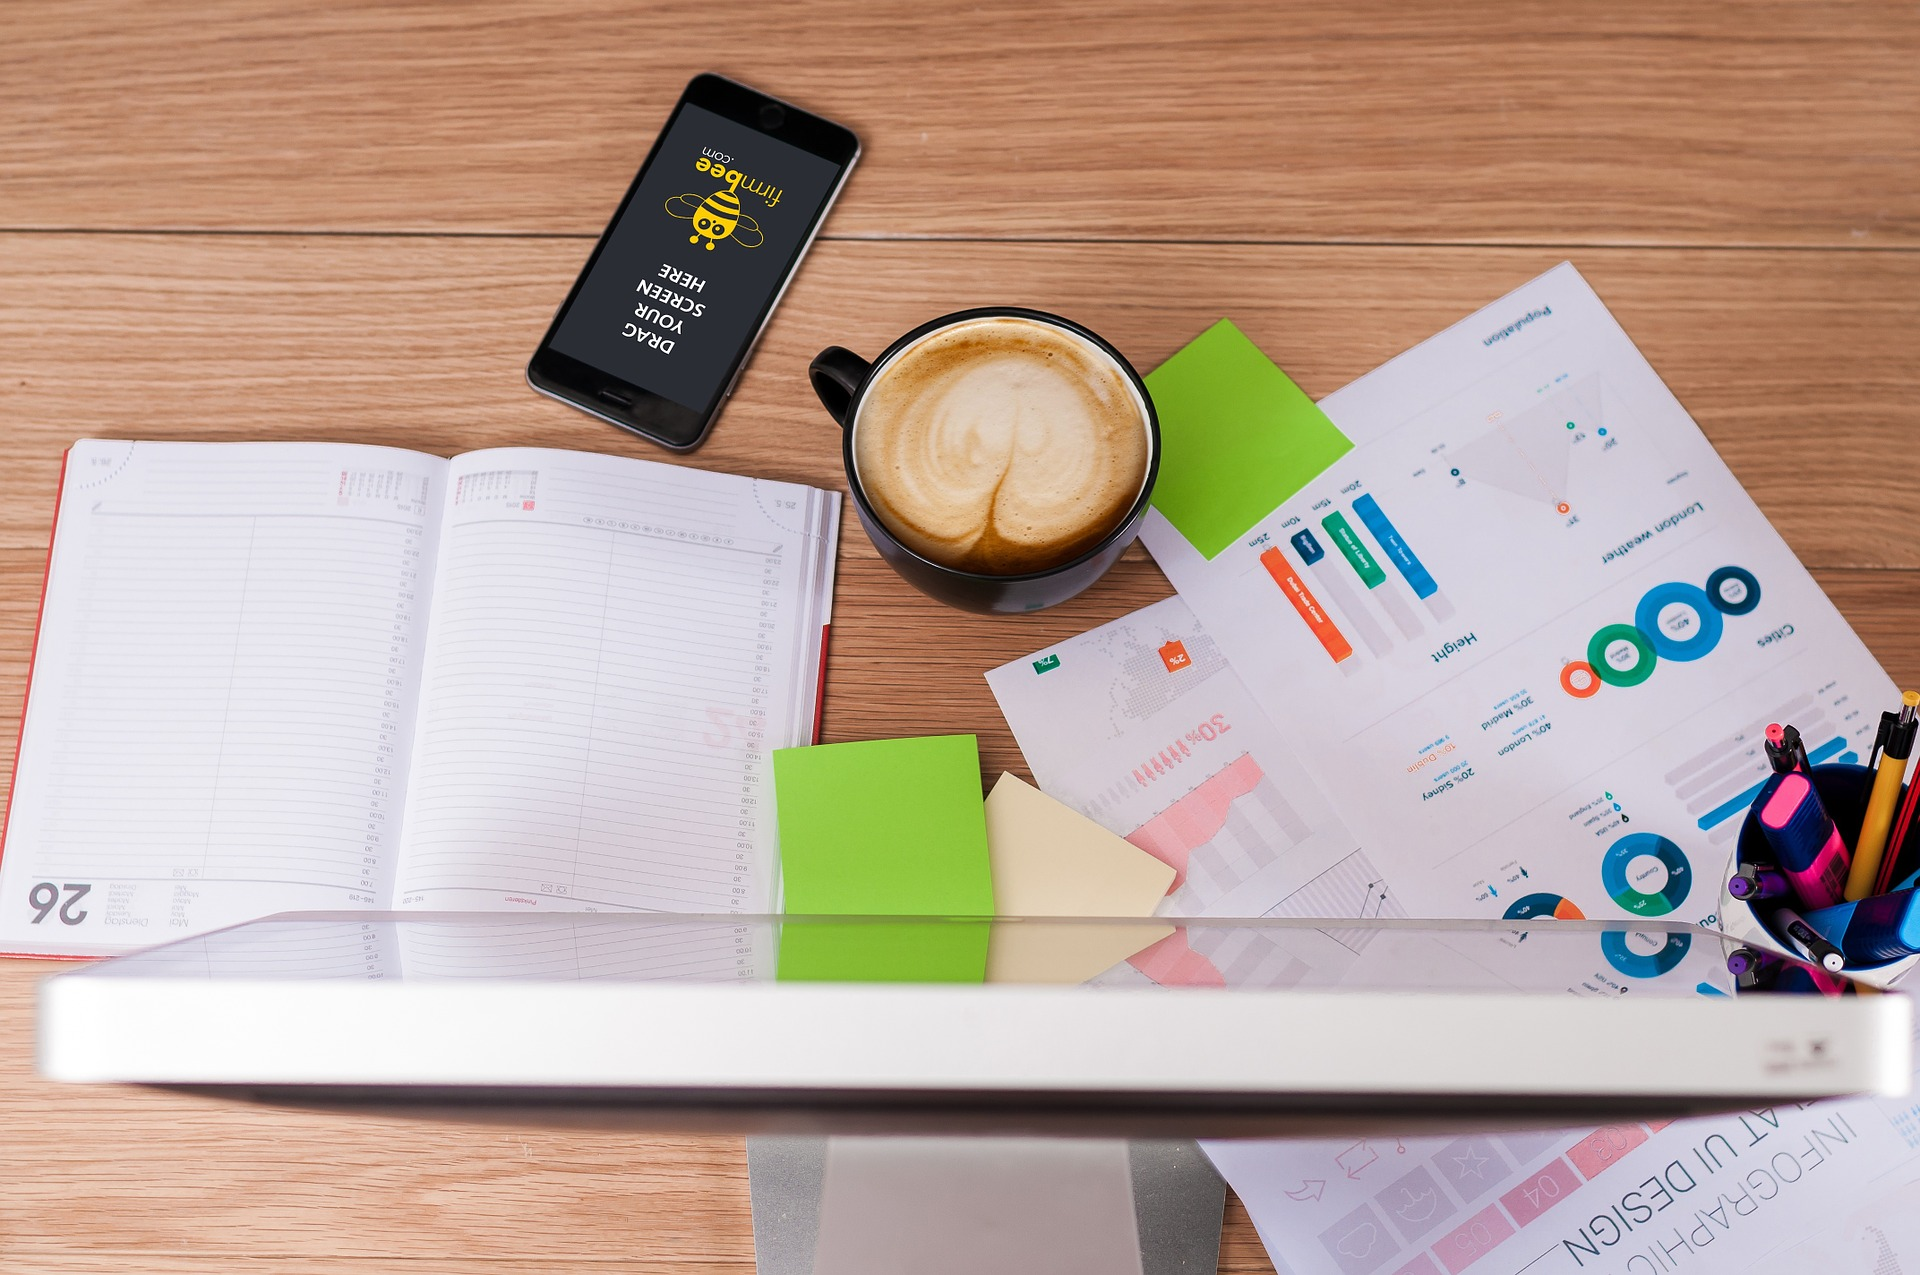 Tips on how to be a successful freelancer